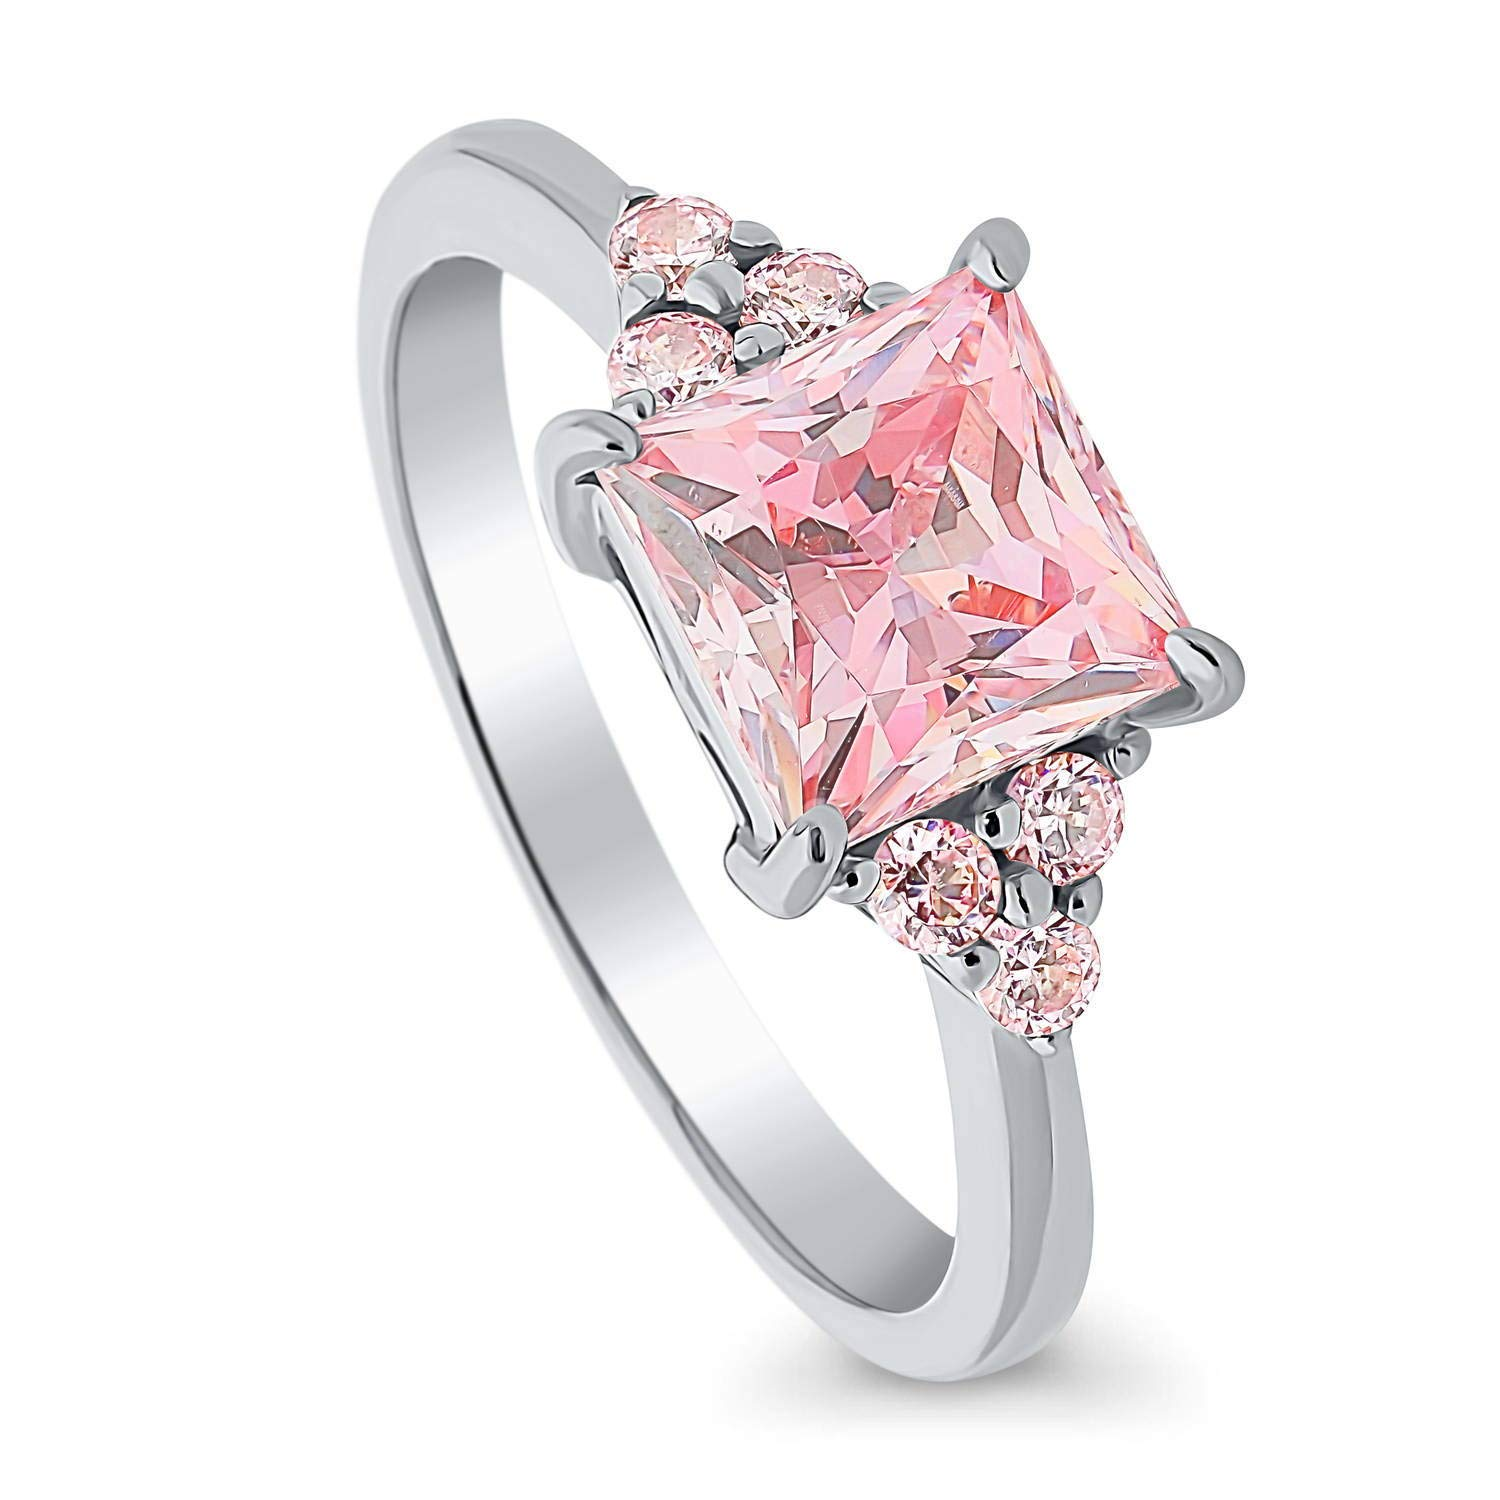 BERRICLE Rhodium Plated Sterling Silver Solitaire Promise Engagement Ring Made with Swarovski Zirconia Pink Princess Cut 2.18 CTW Size 5